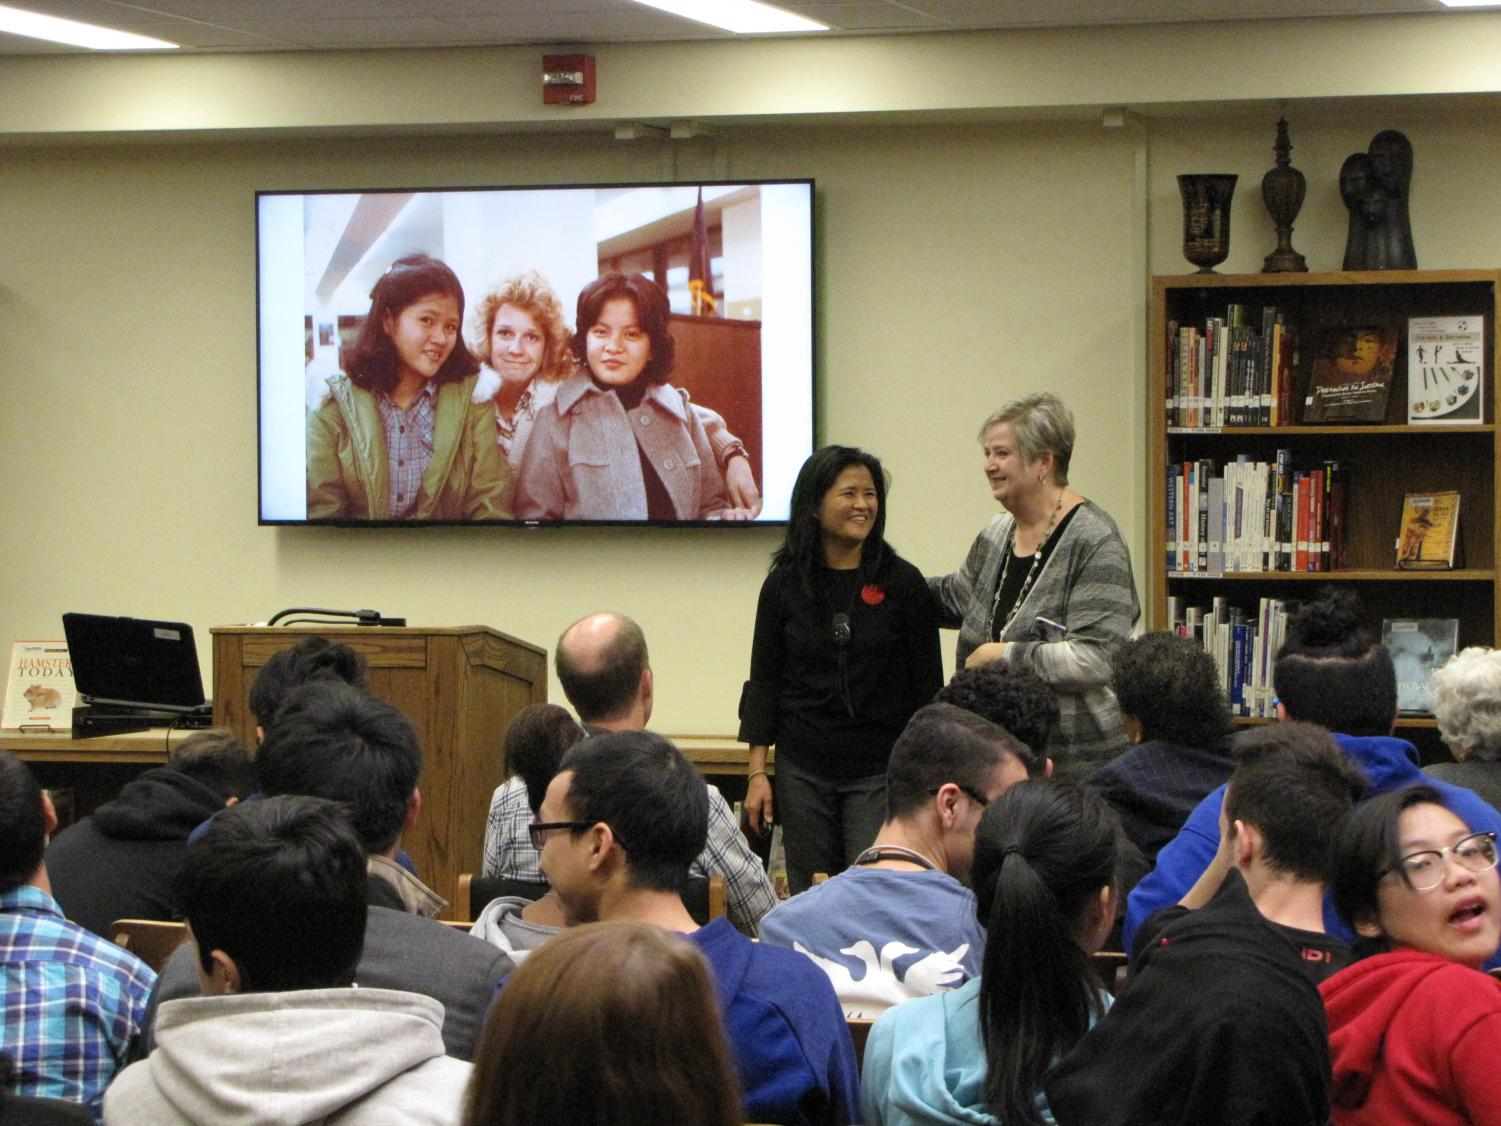 Lincoln High alum and author Channy Laux (left) presents her book, Short Hair Detention: Memoirs of a Thirteen-Year-Old Girl Surviving the Cambodian Genocide, on December 19th, 2017 in the Media Center. Photo by Carter Hulinsky.